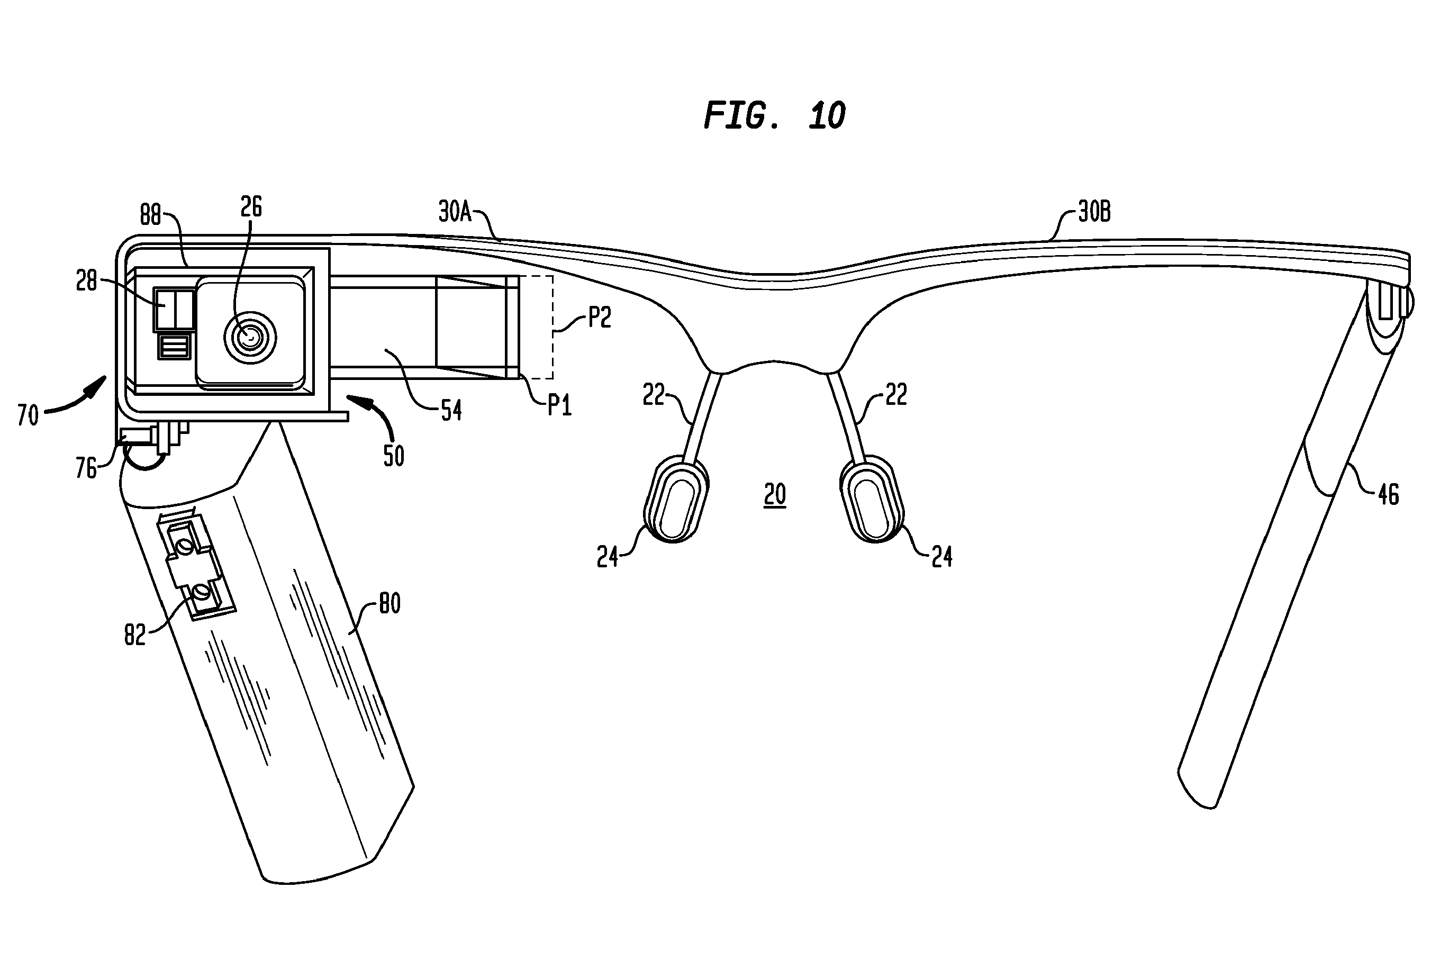 A new USPTO filing provides some details on the design of Google Glass